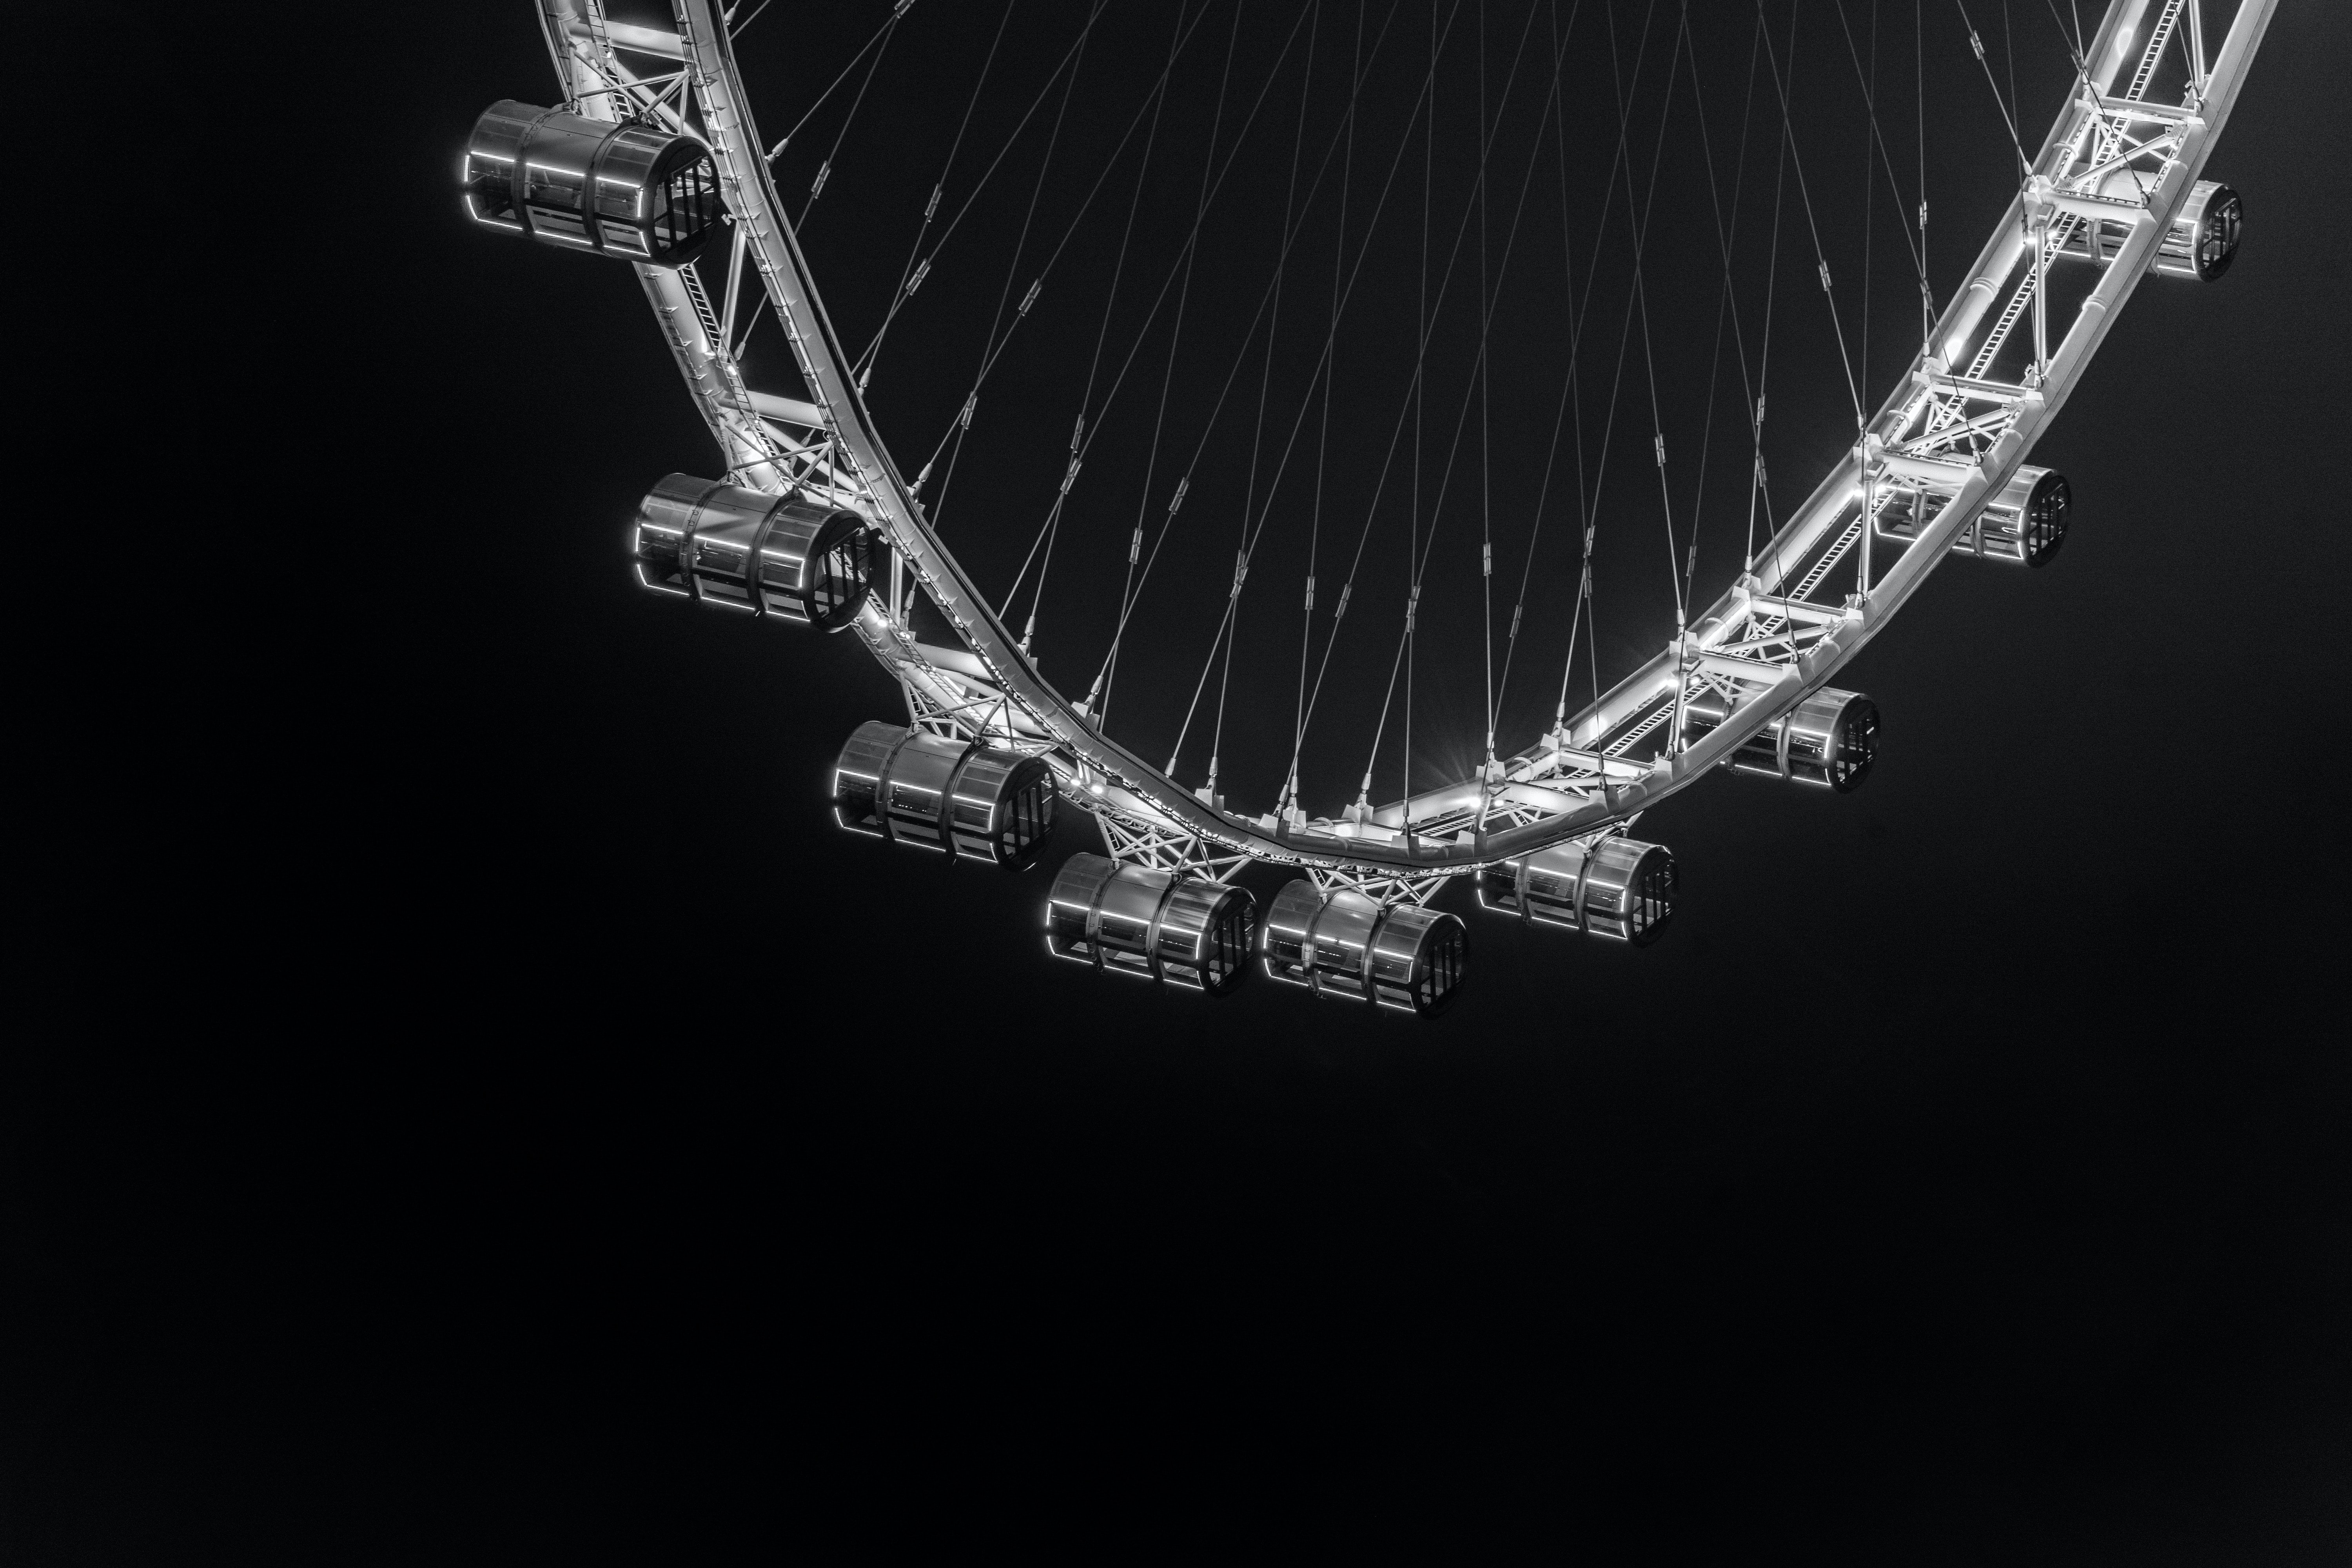 A black-and-white shot of the Singapore Flyer against the black background.